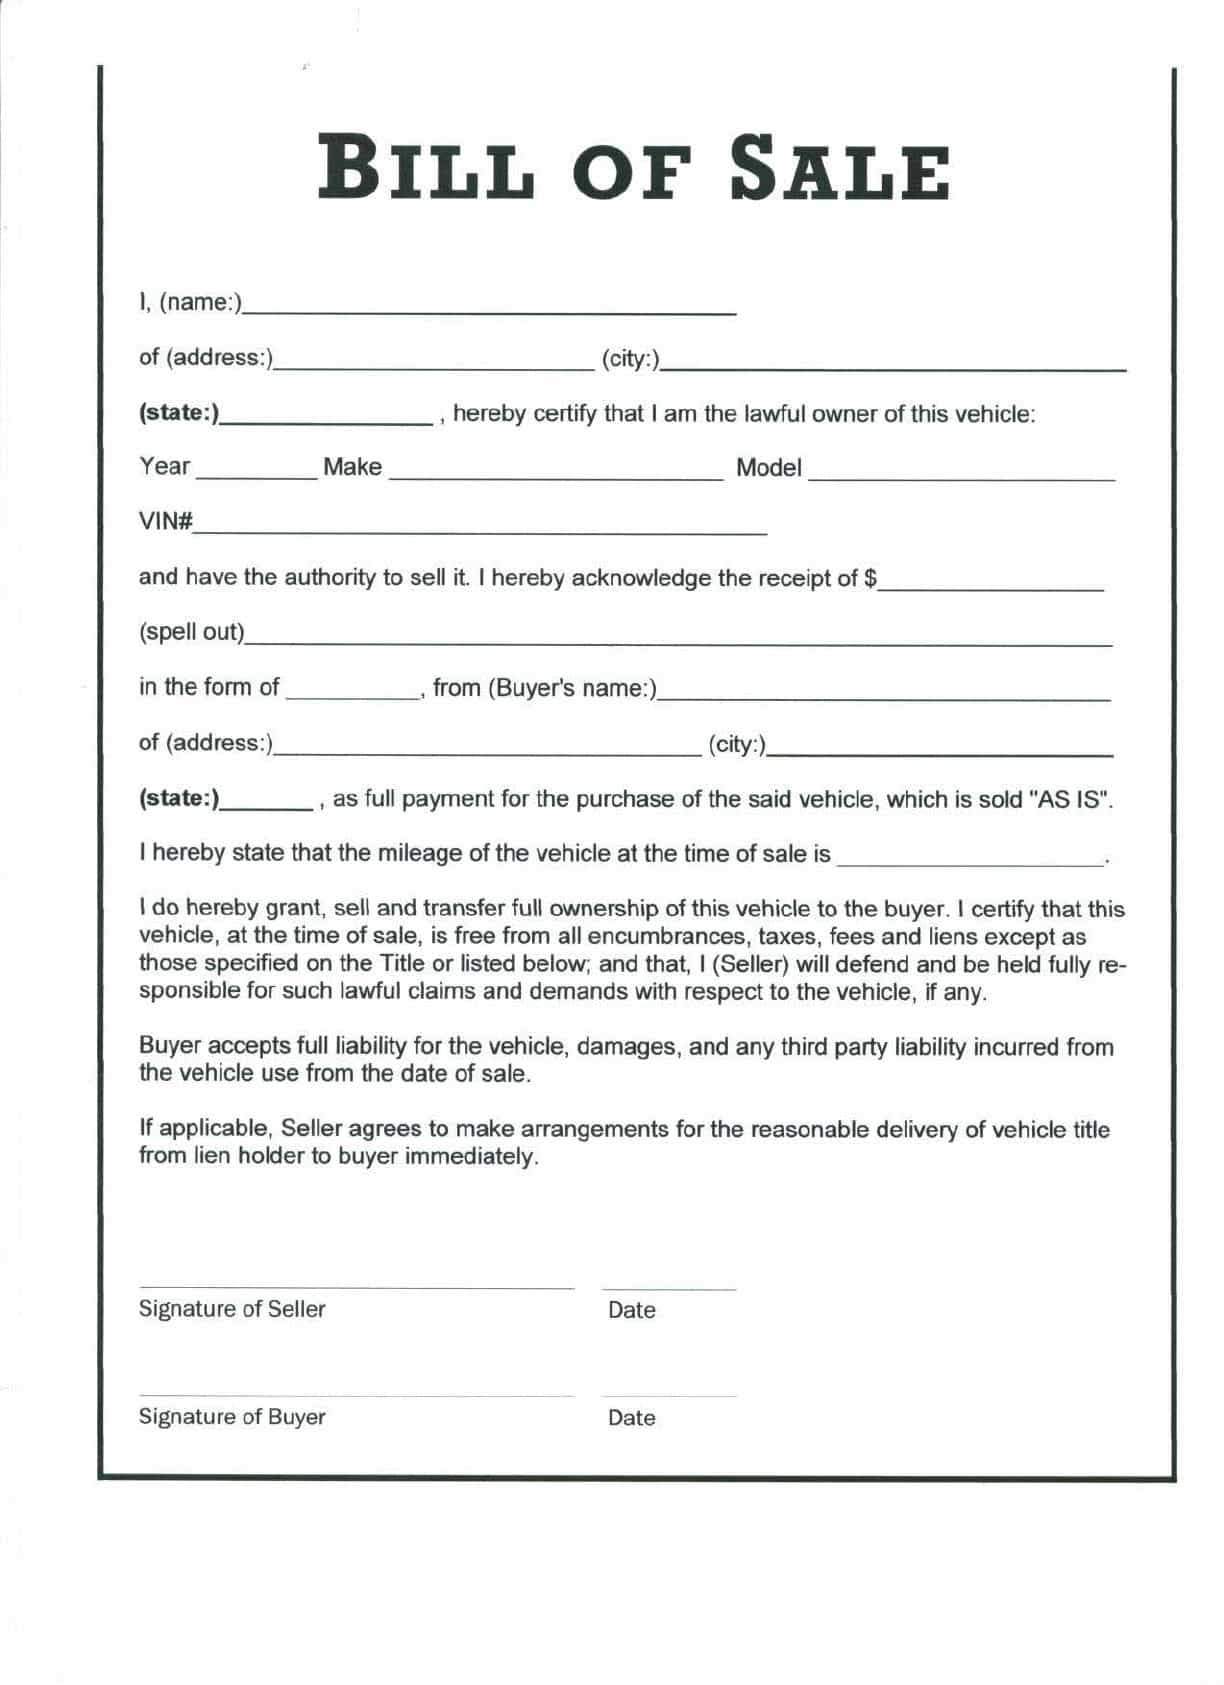 Bill of sale personal property template